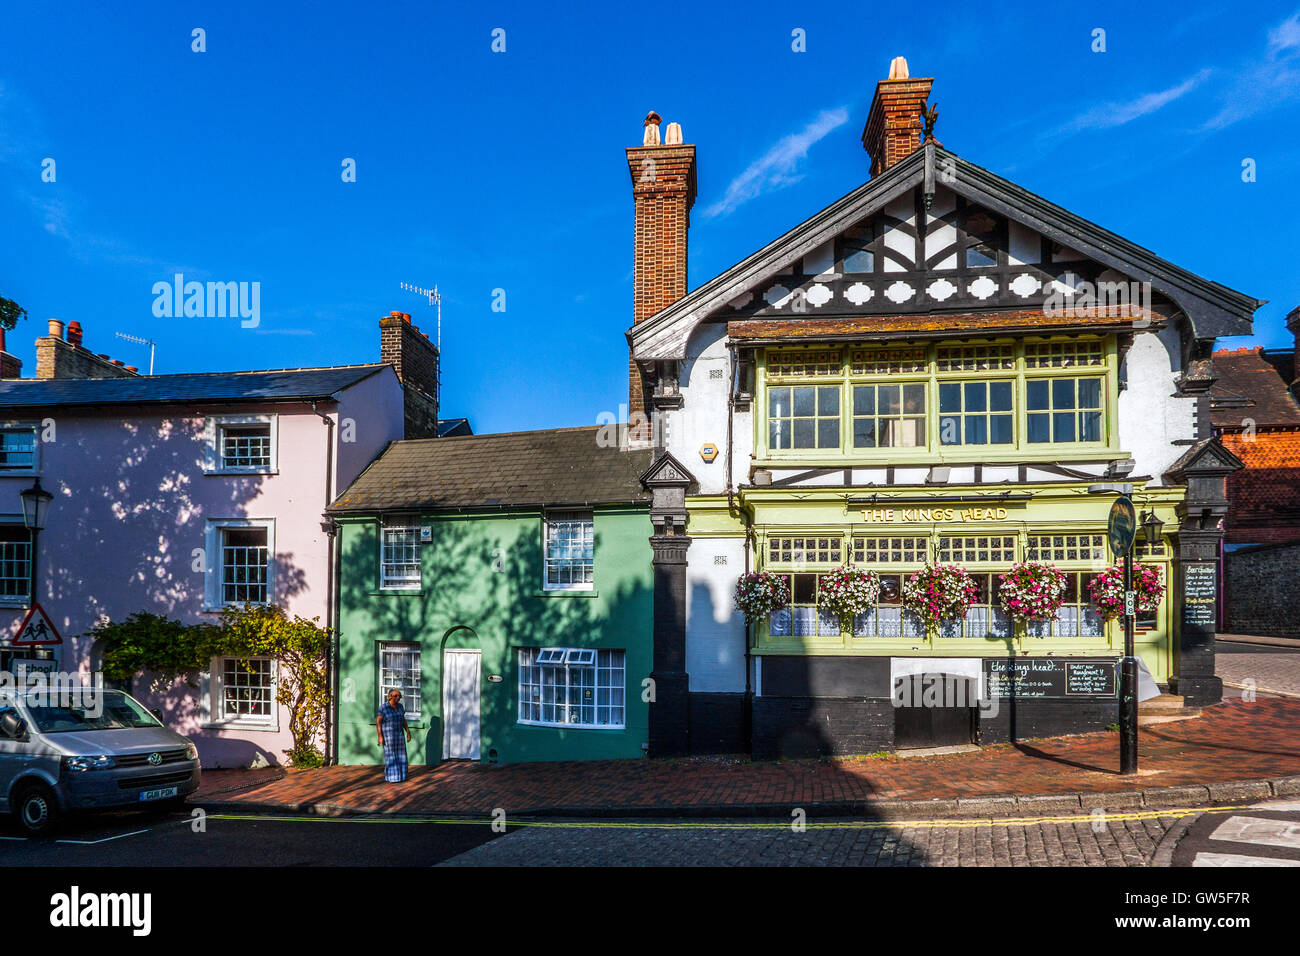 The King's Head Public House, Lewes, Sussex - Stock Image